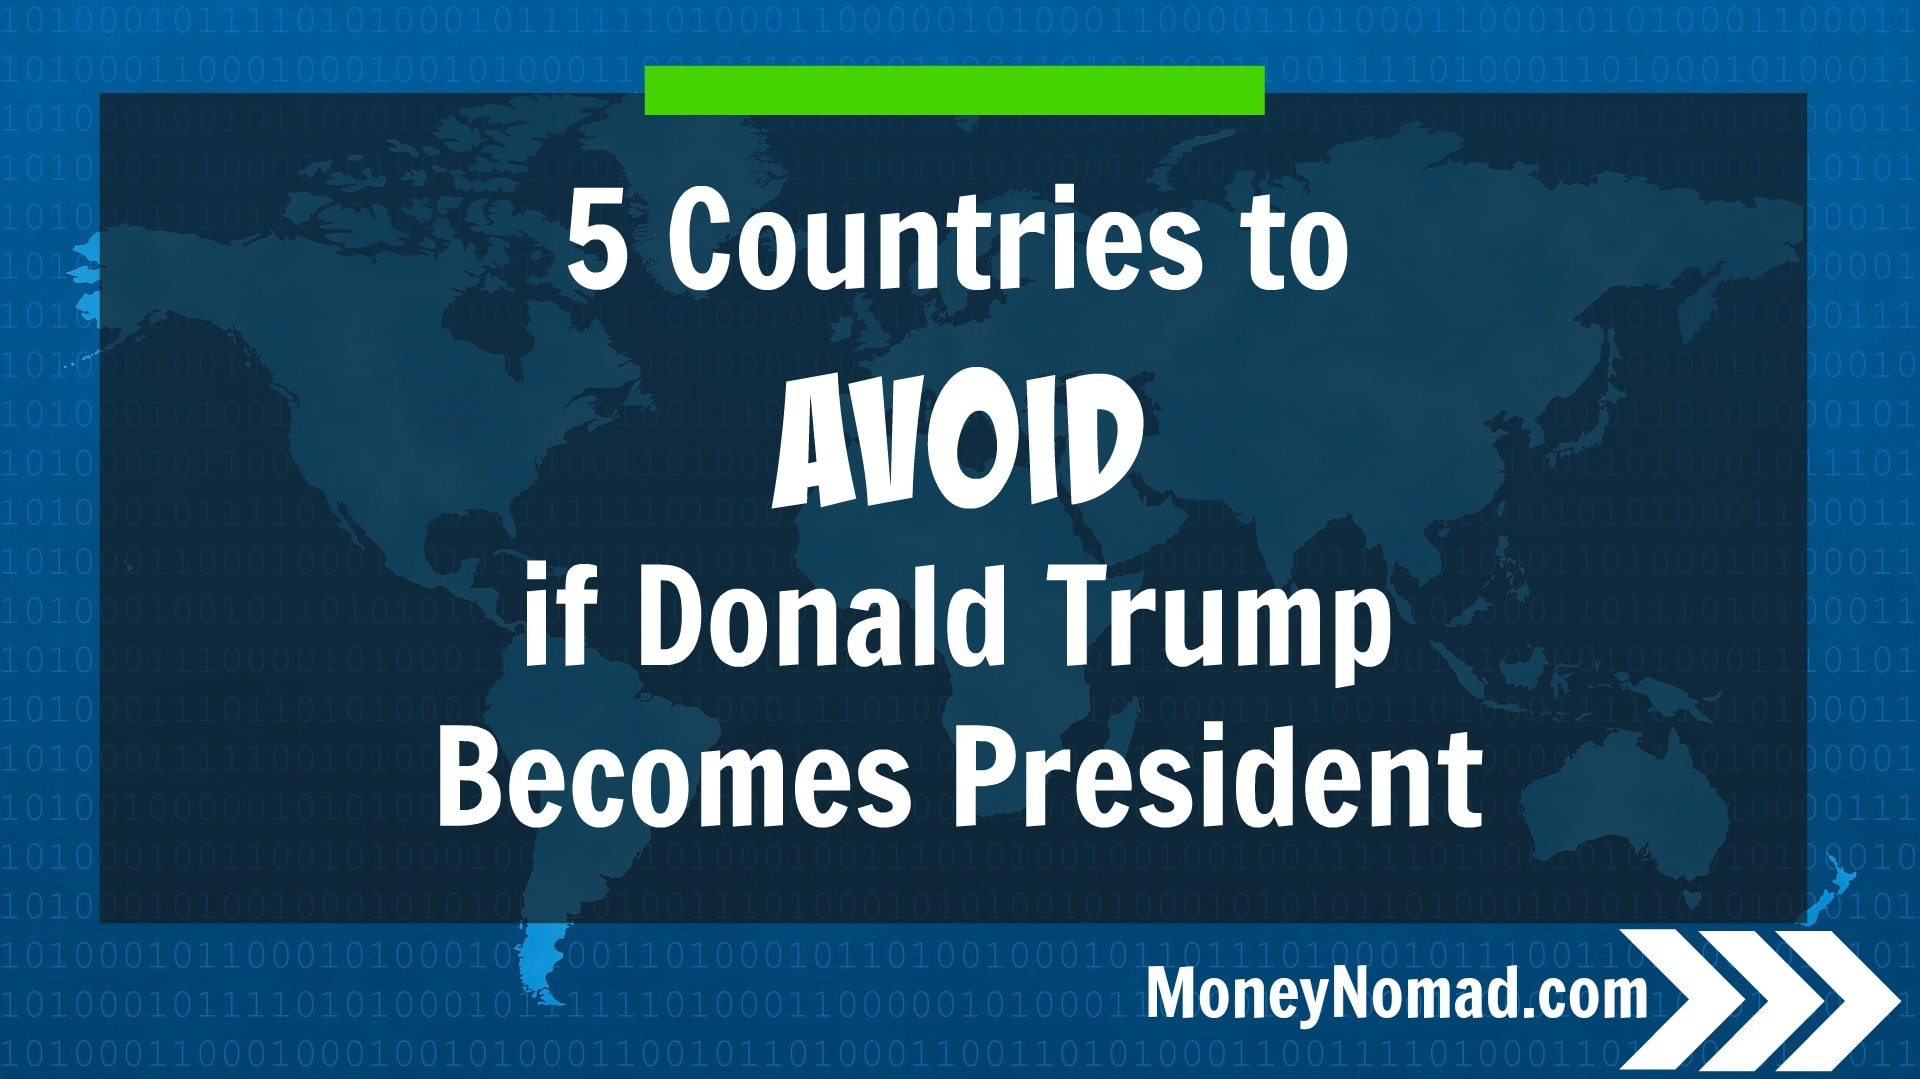 5 Countries to Avoid if Trump Becomes President